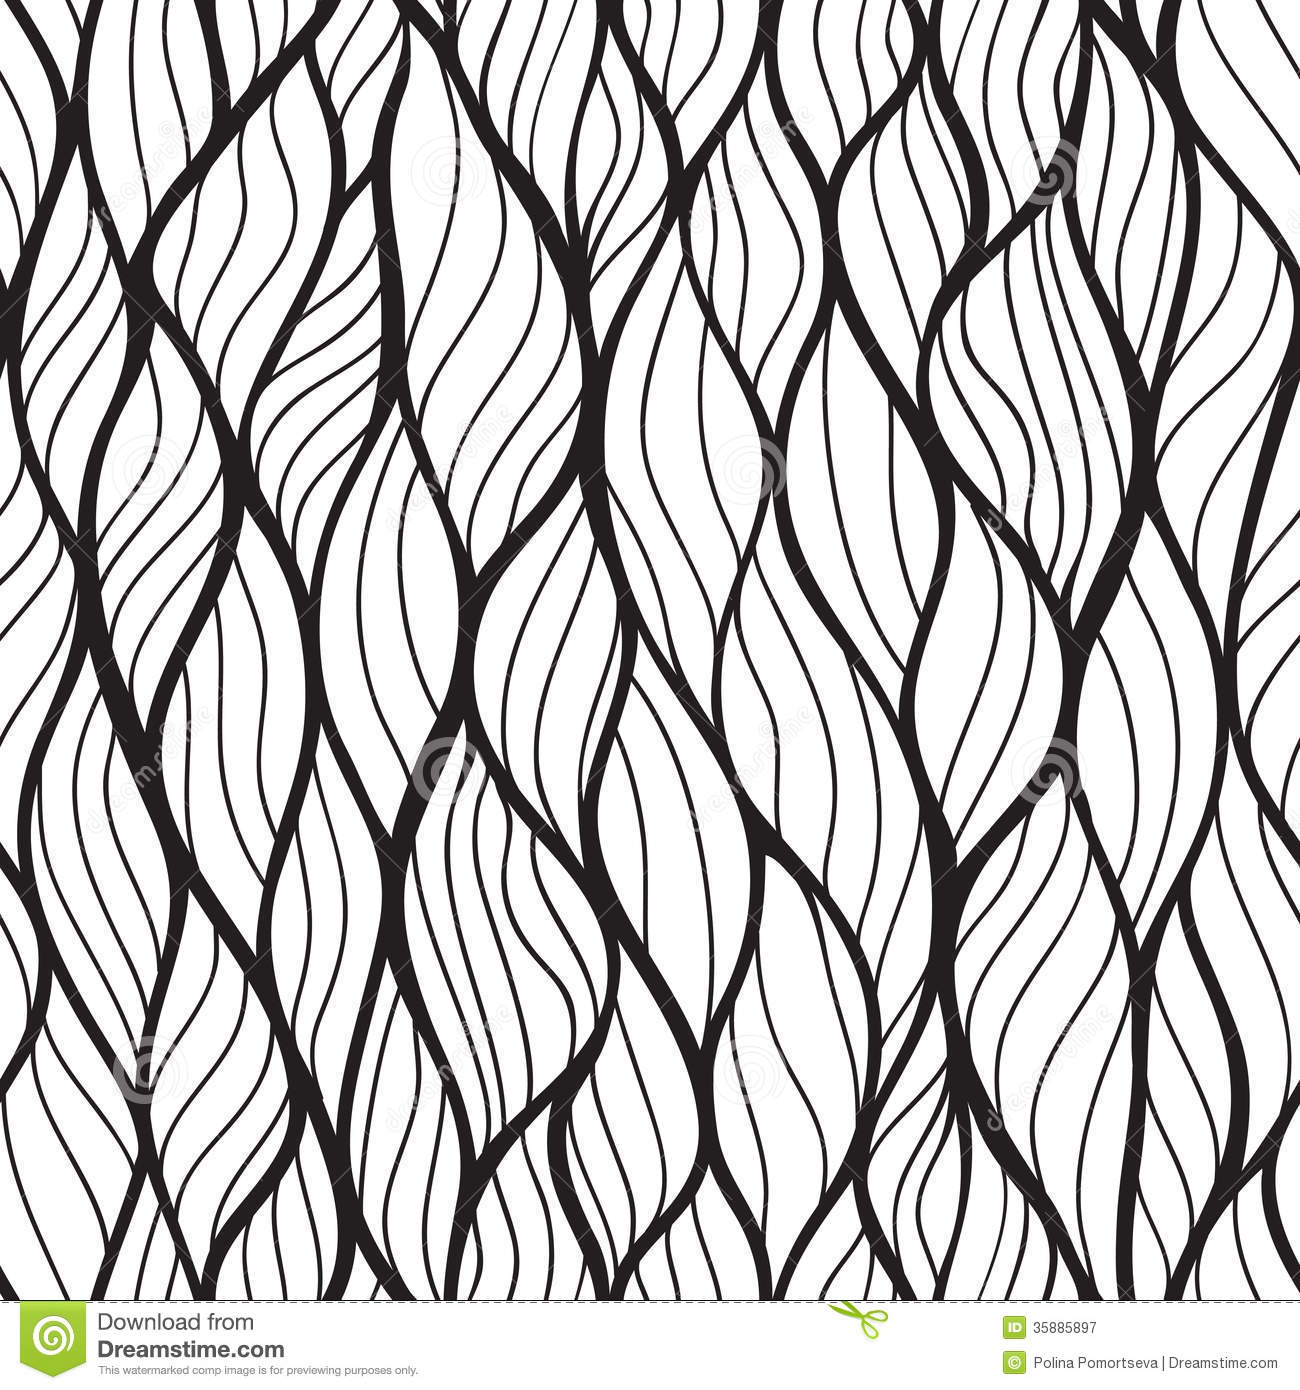 Line Art Images Free : Lines seamless background stock vector illustration of